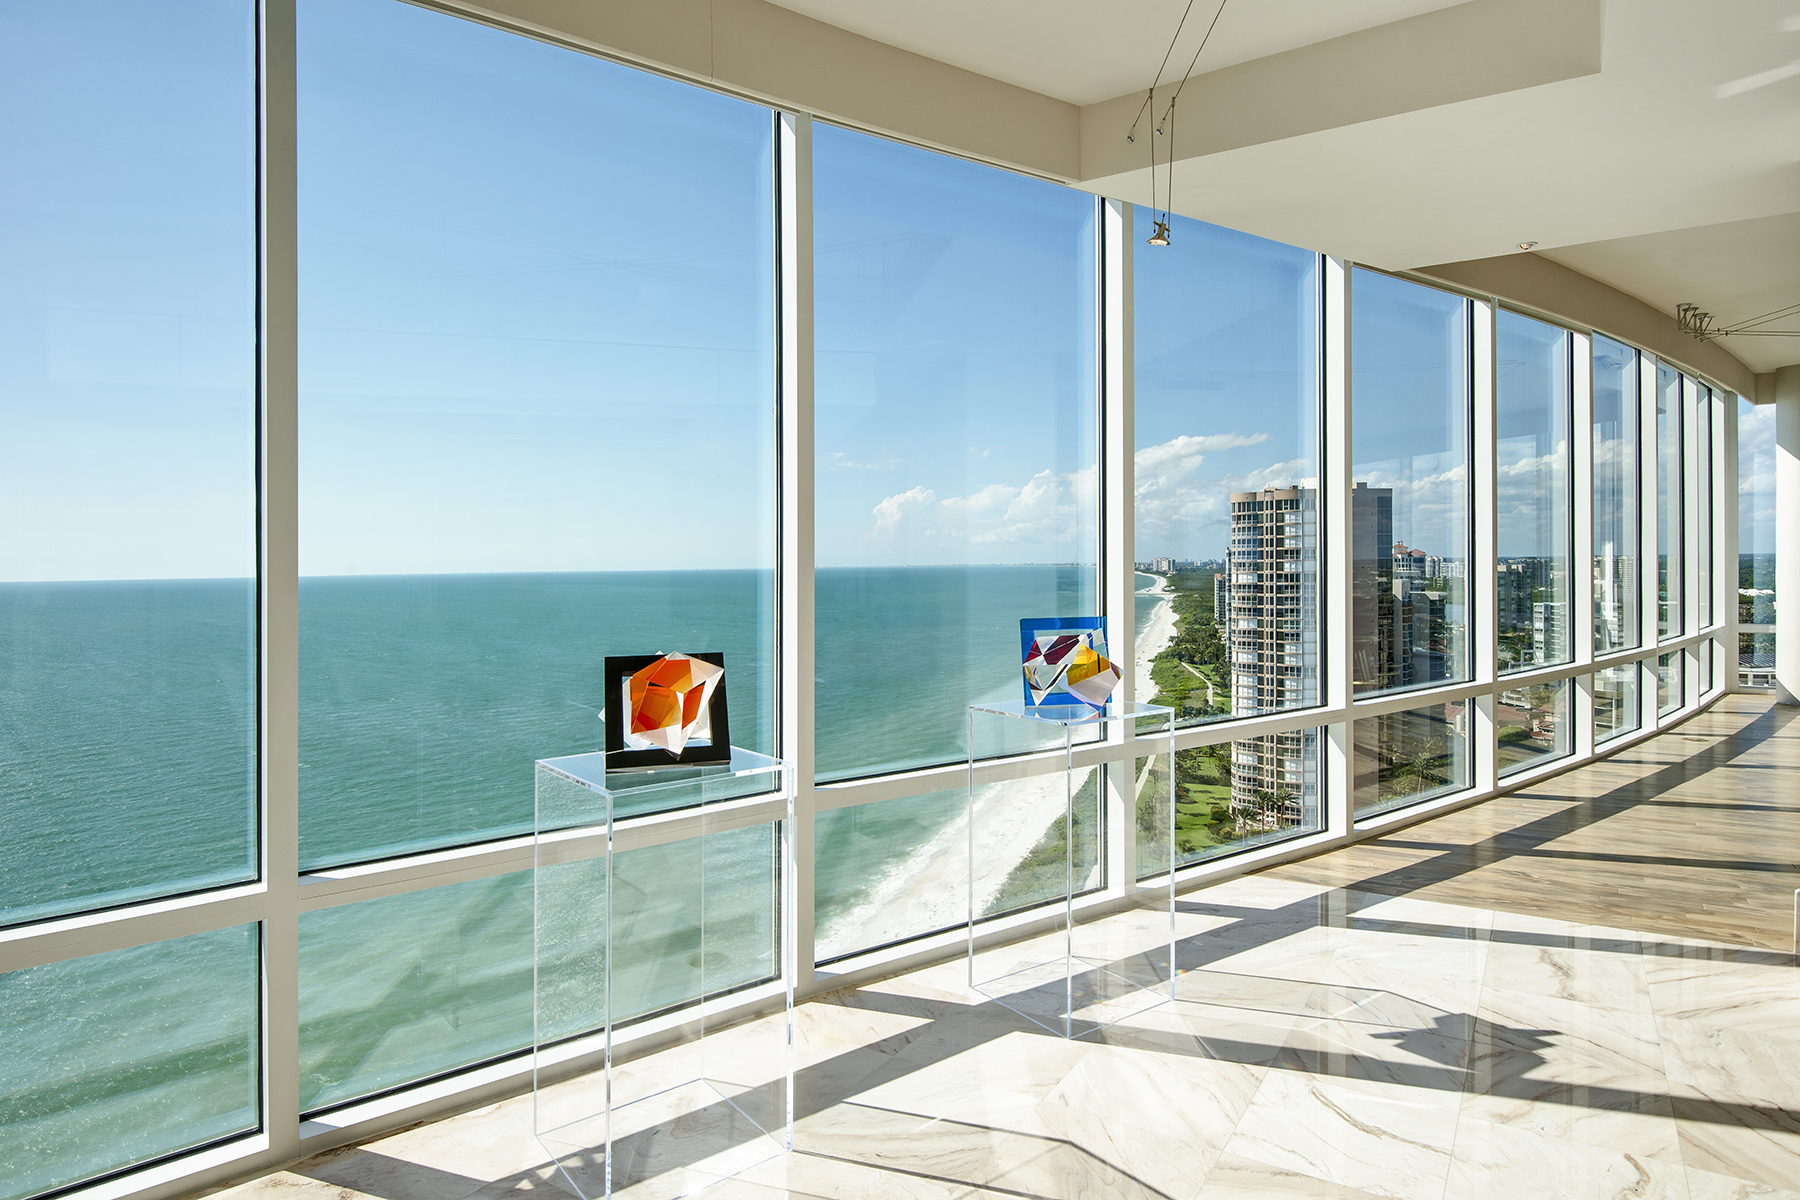 Condominium for Sale at PARK SHORE - LE RIVAGE 4351 Gulf Shore Blvd N PH-5 Naples, Florida, 34103 United States